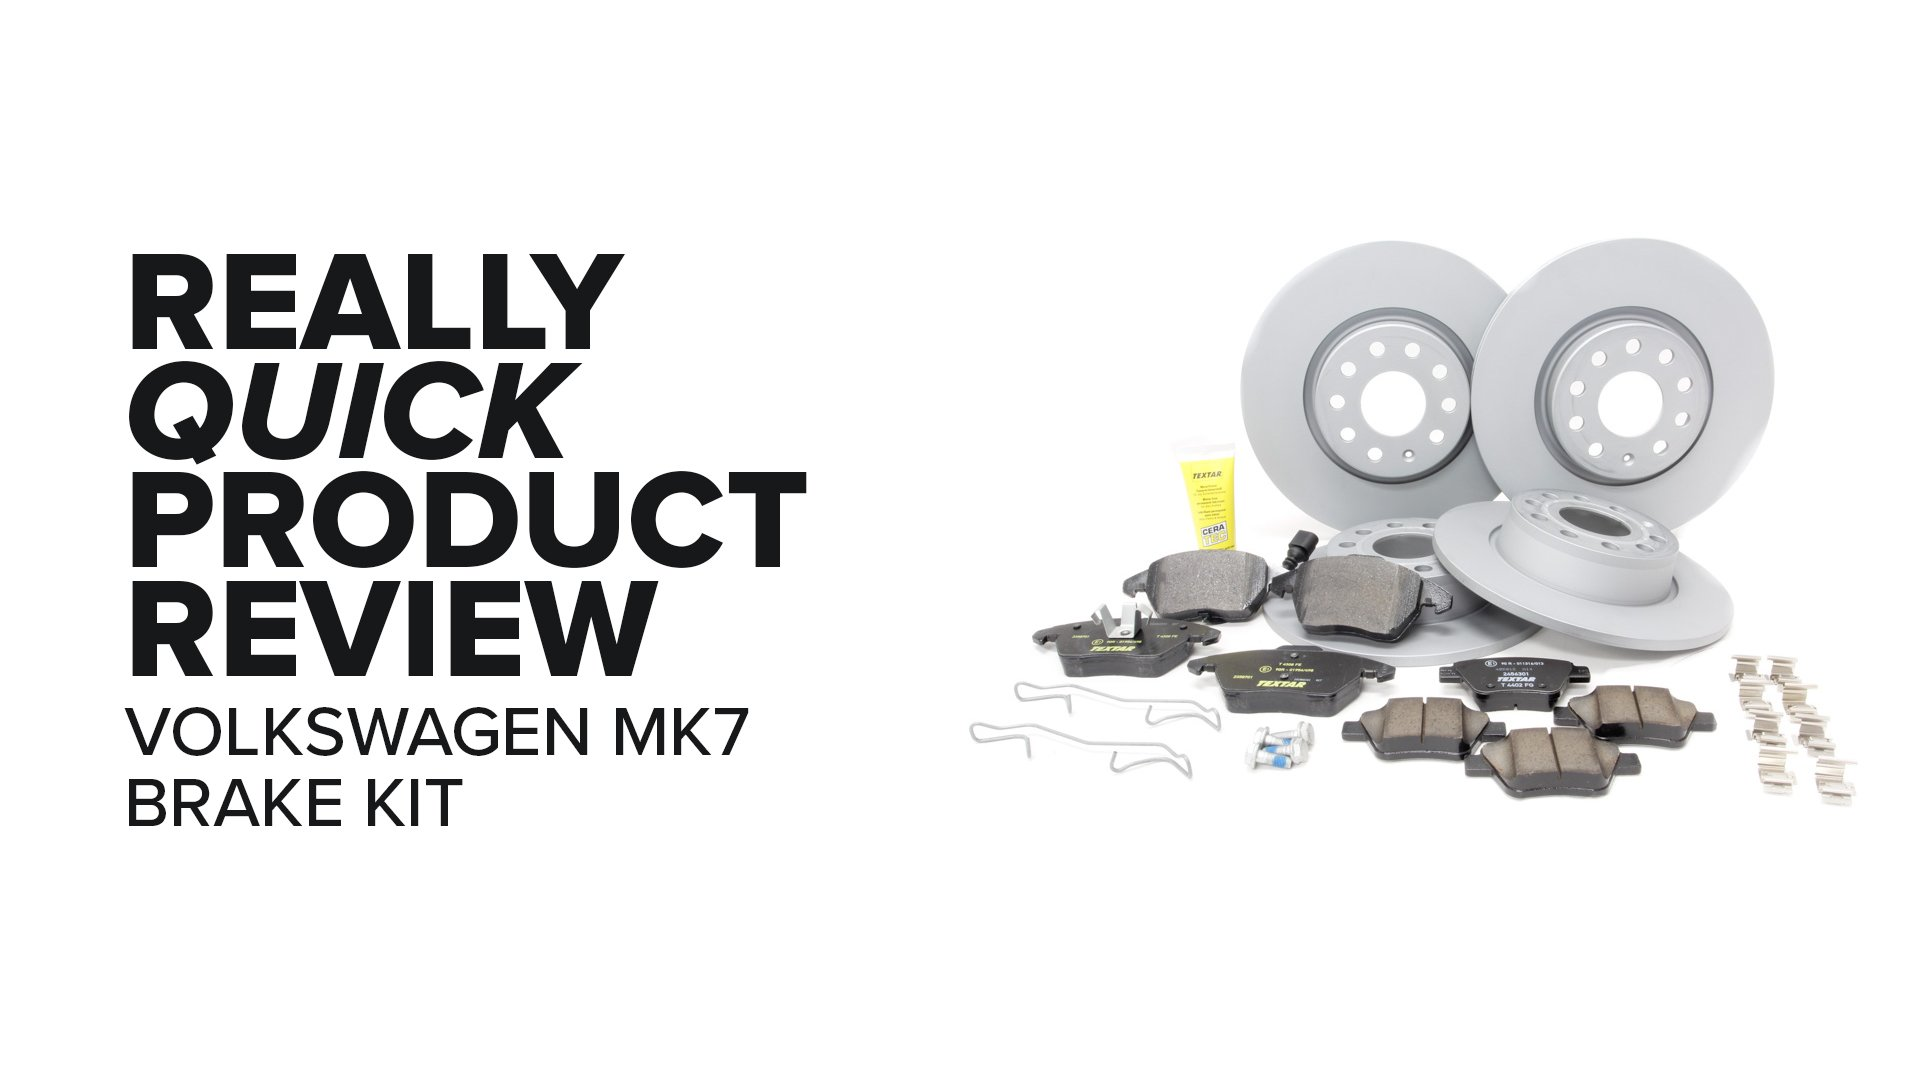 MK7 Volkswagen & Audi (GTI, A3, Jetta, & More) Brake Kit - Symptoms And Product Review